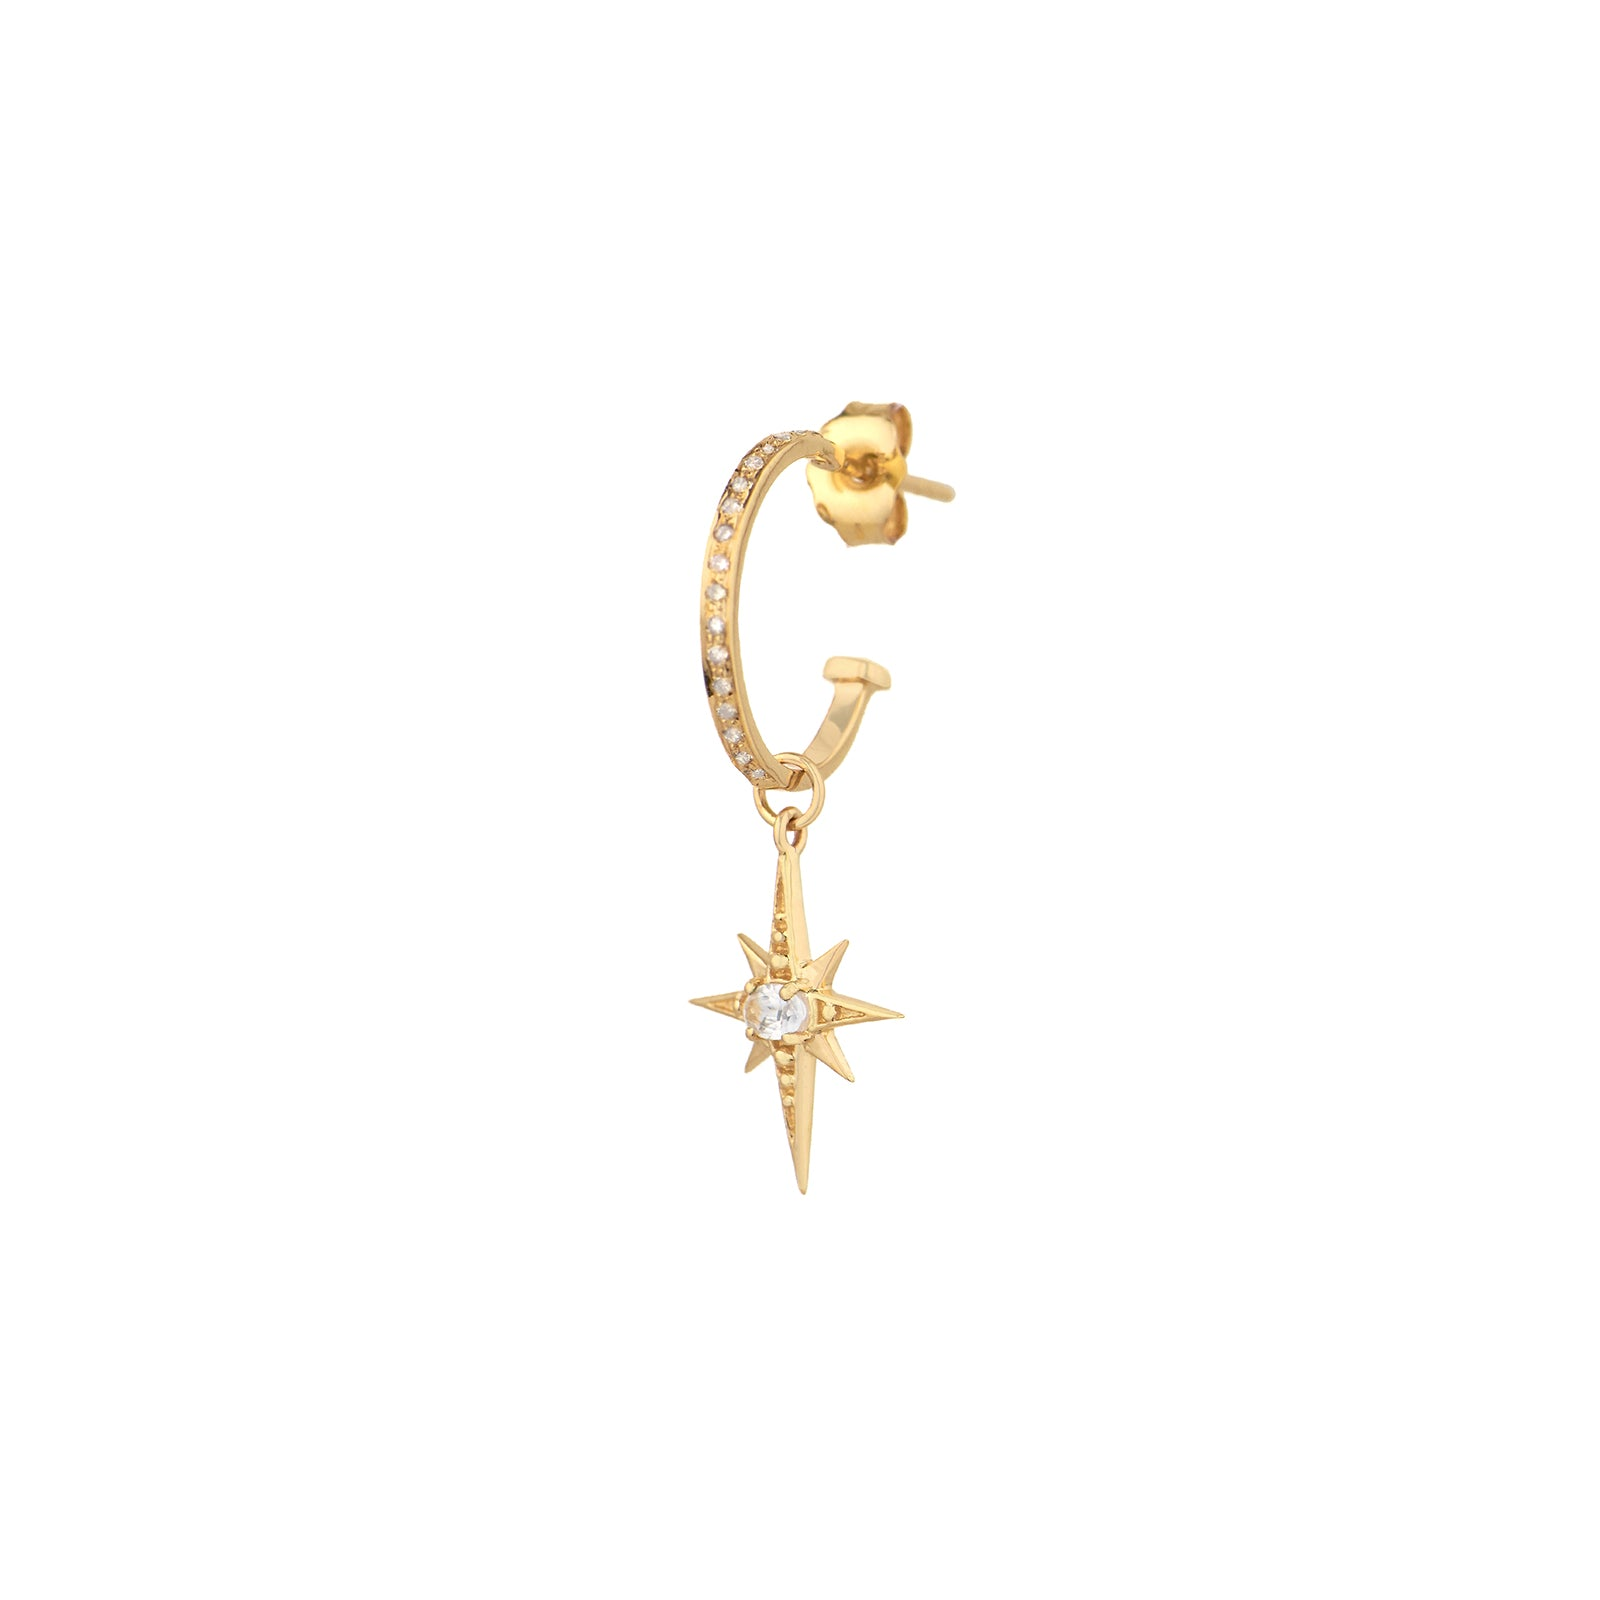 Celine Daoust North Star Charm Hoop Earring - White Diamond - Earrings - Broken English Jewelry